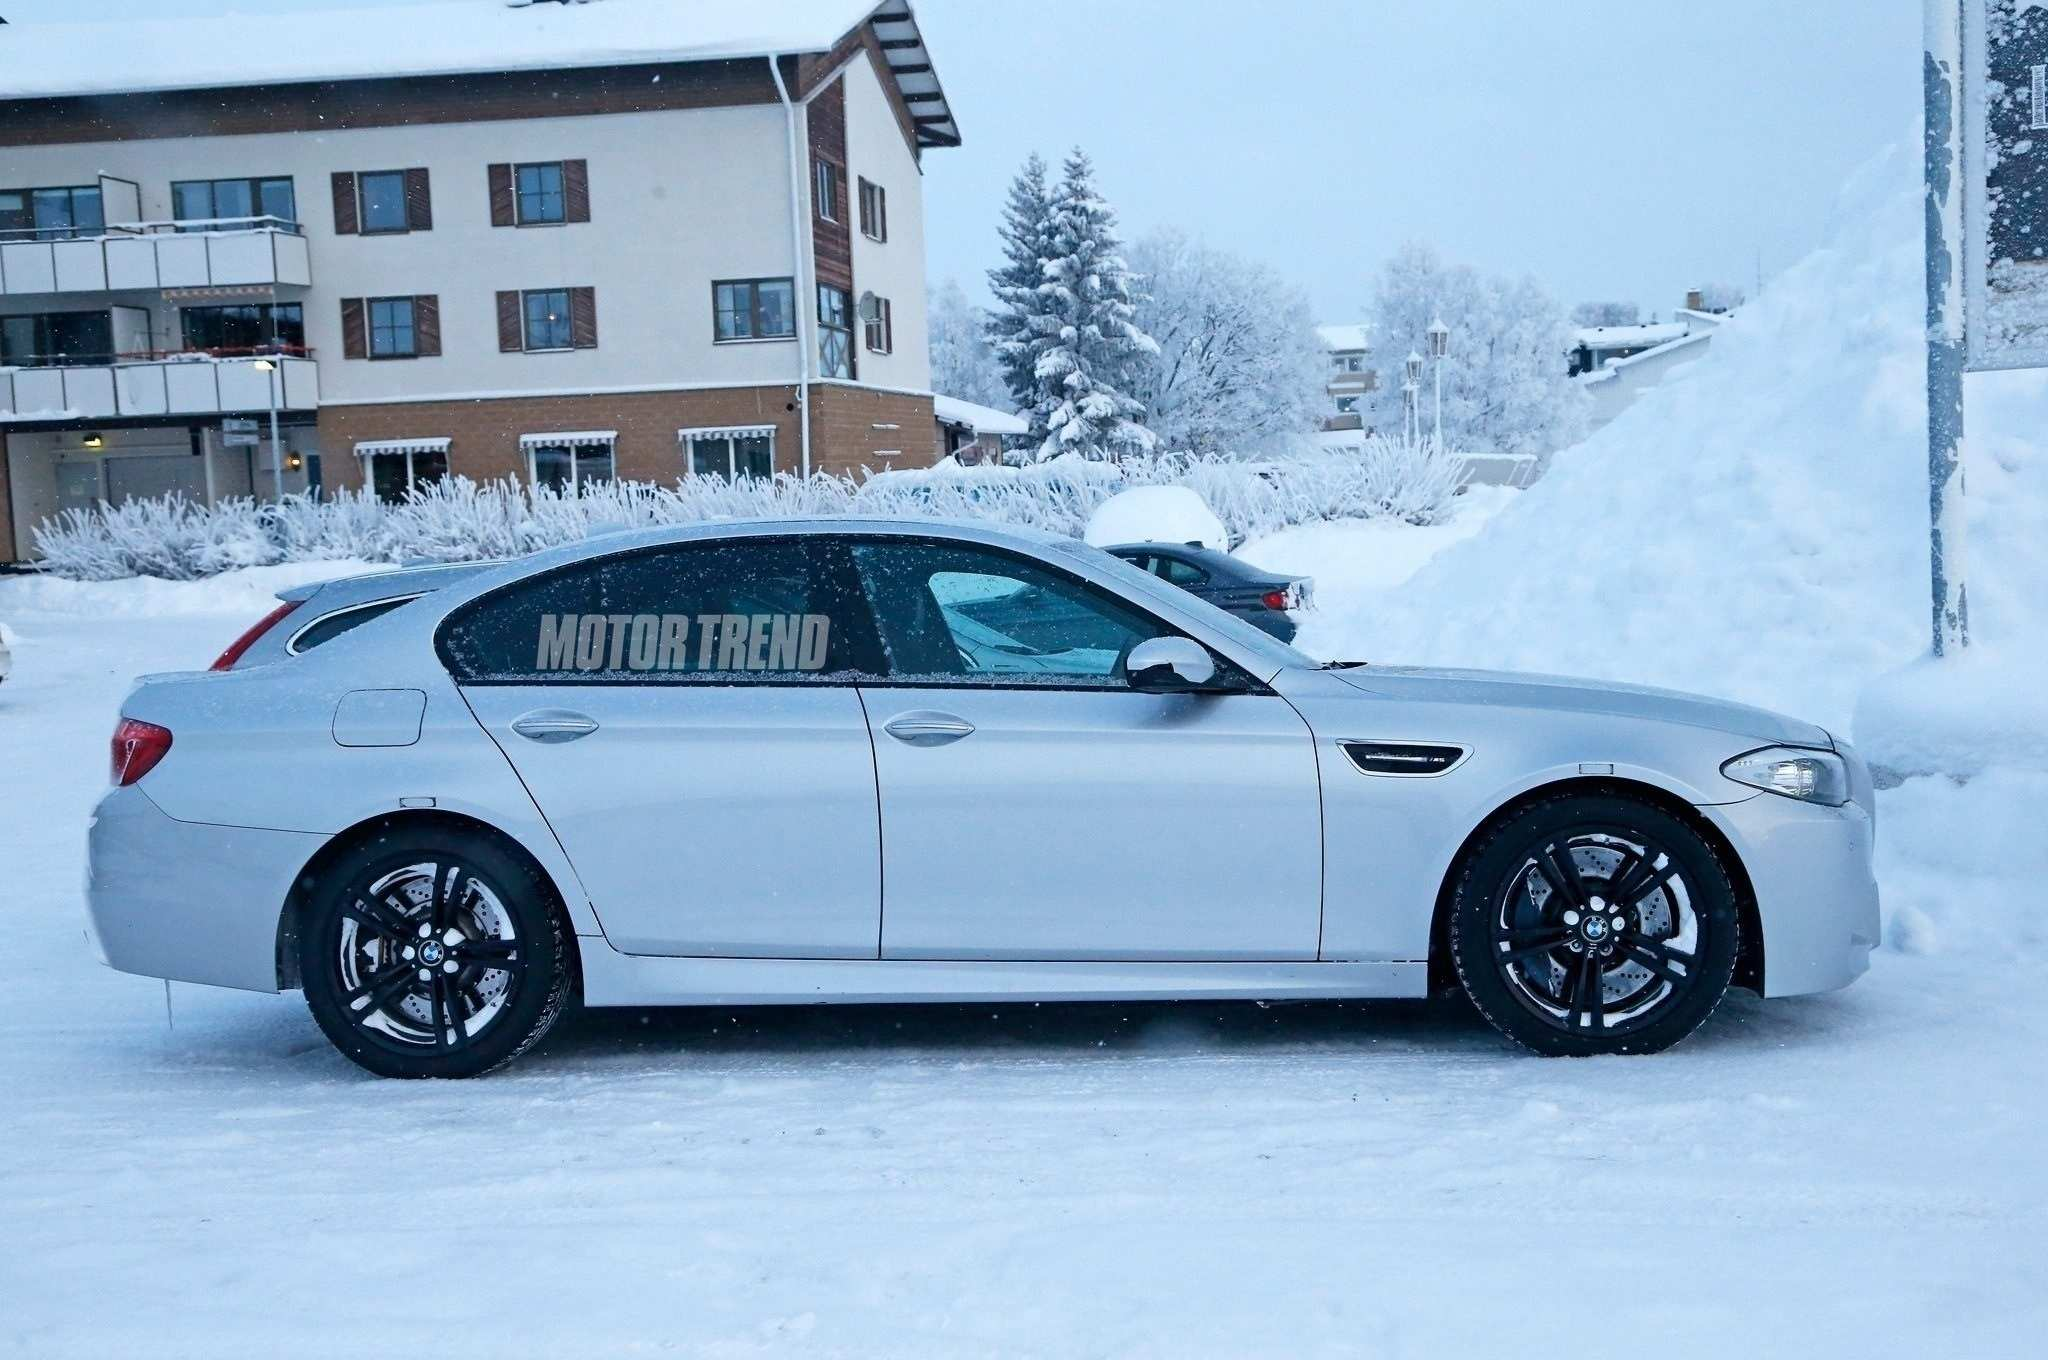 47 New 2019 BMW M5 Xdrive Awd Images